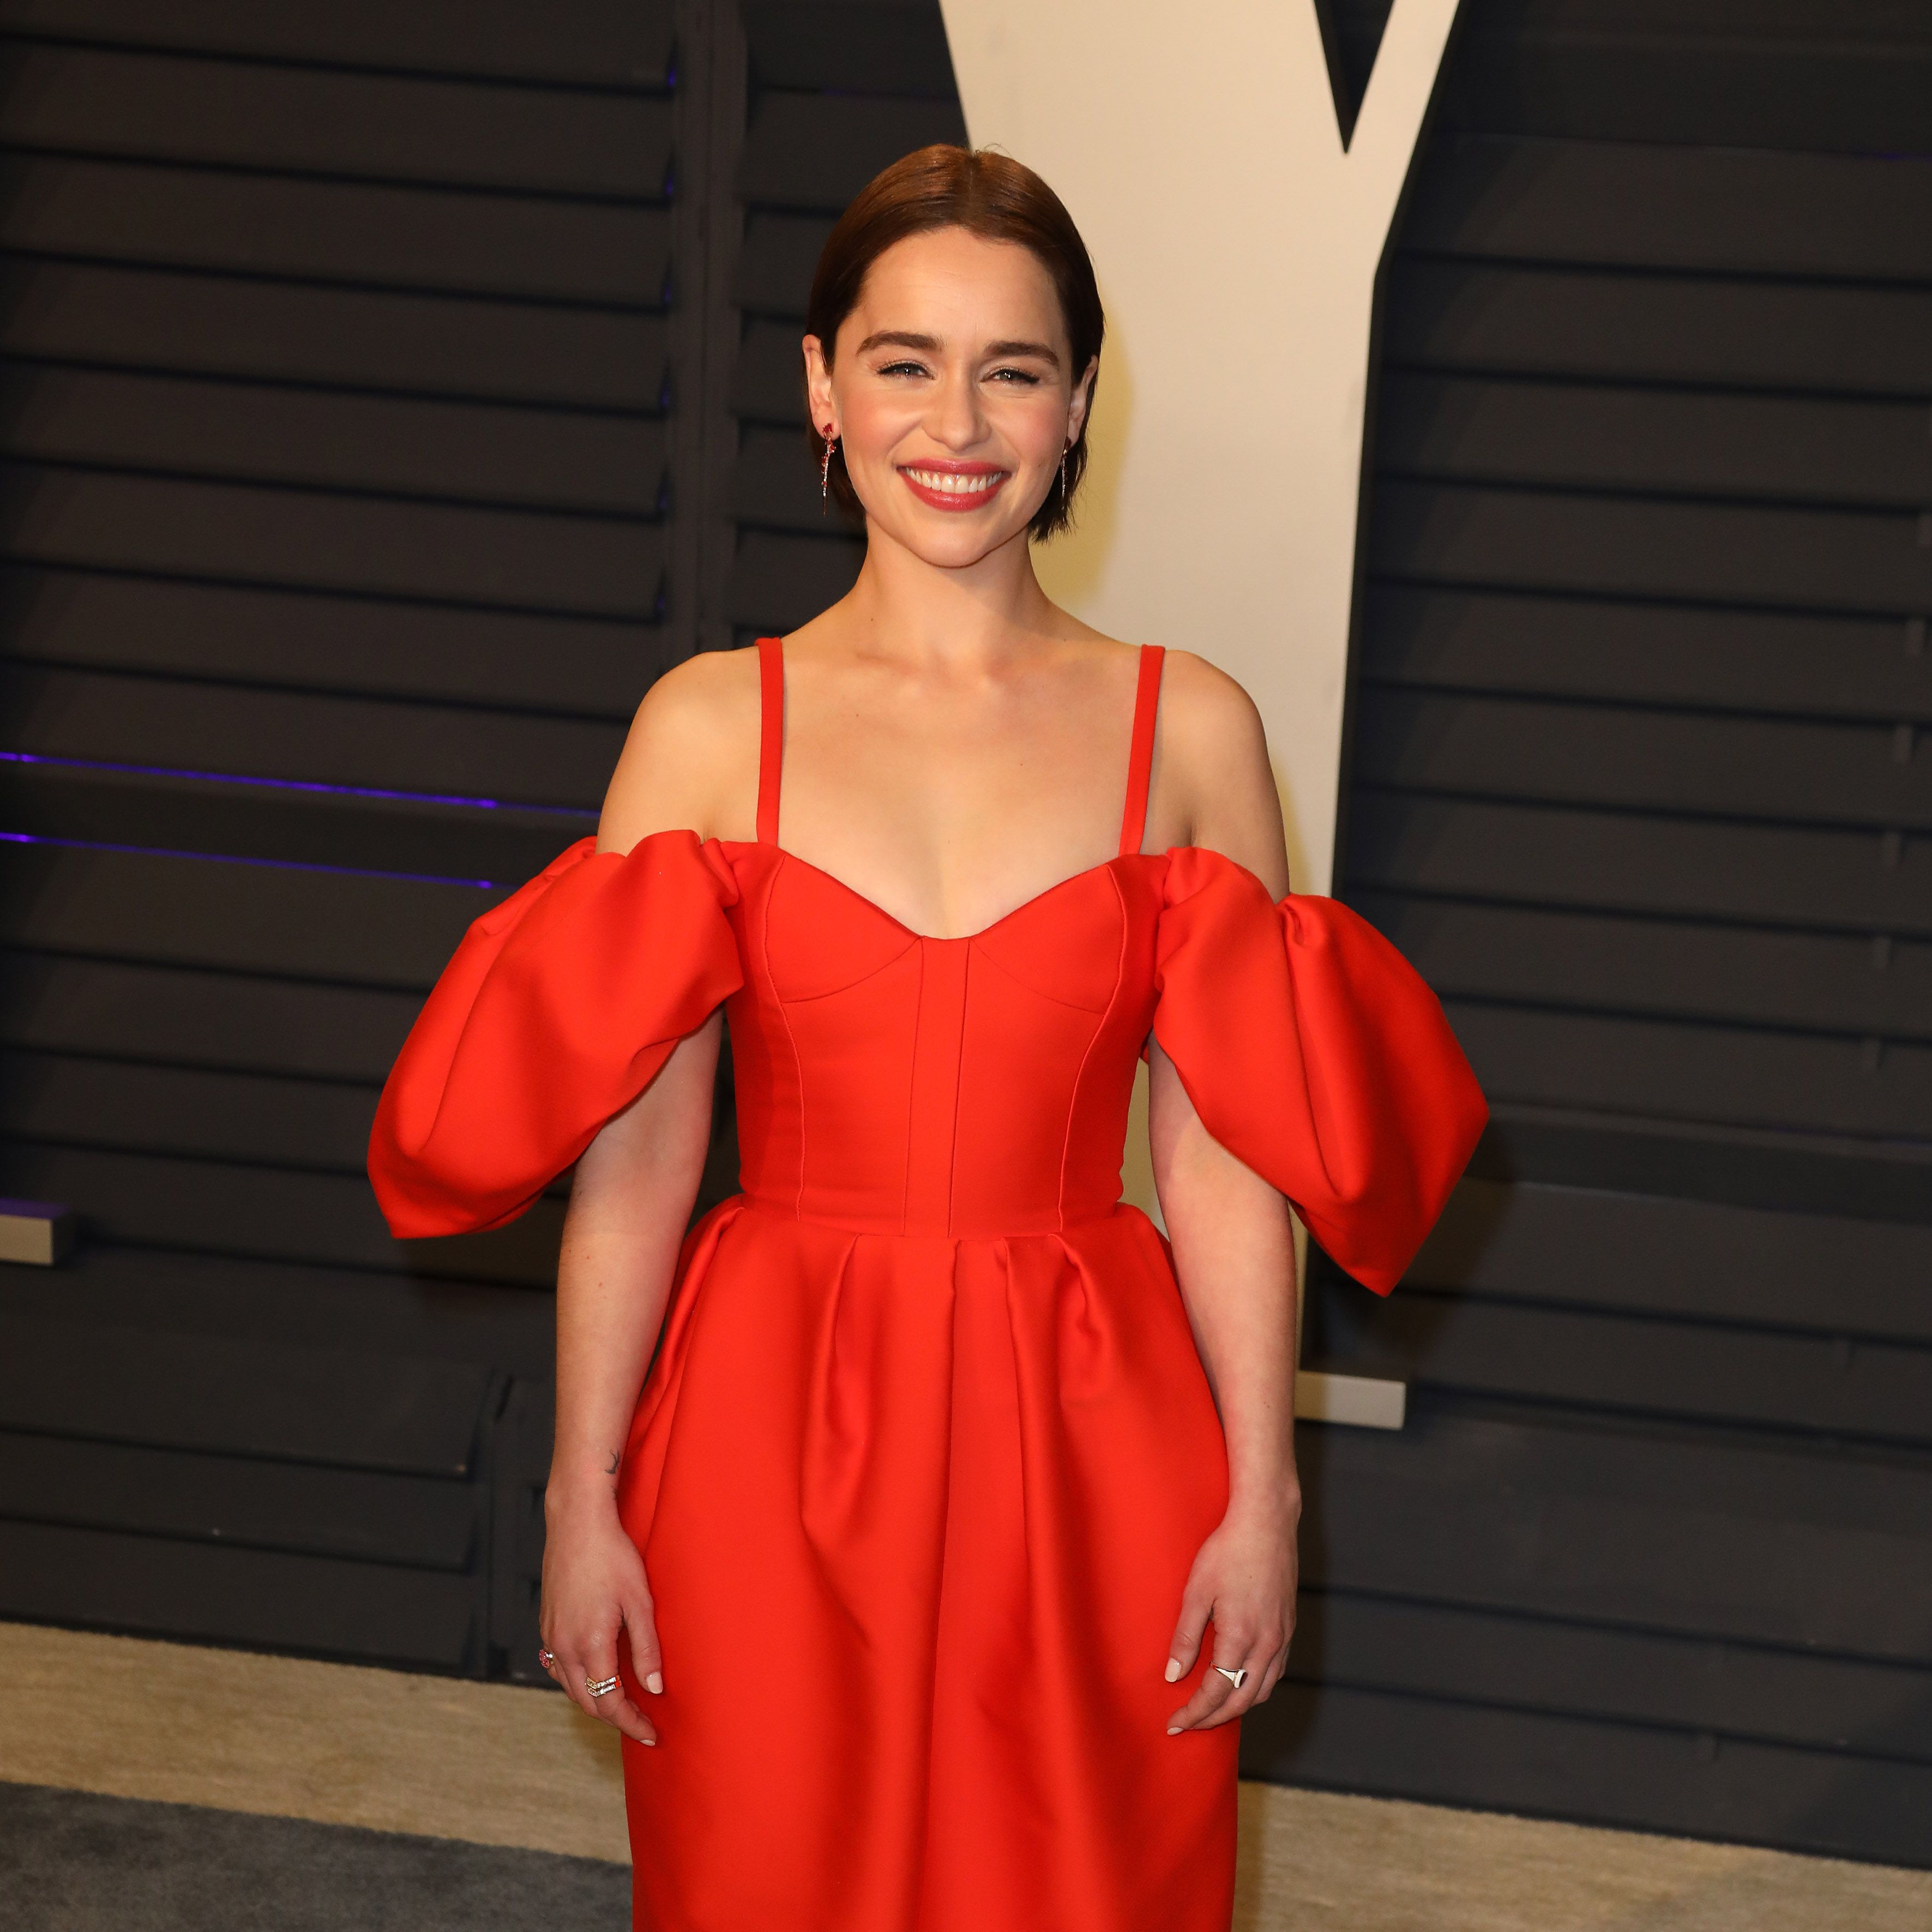 Emilia Clarke reveals she suffered two aneurisms that almost killed her